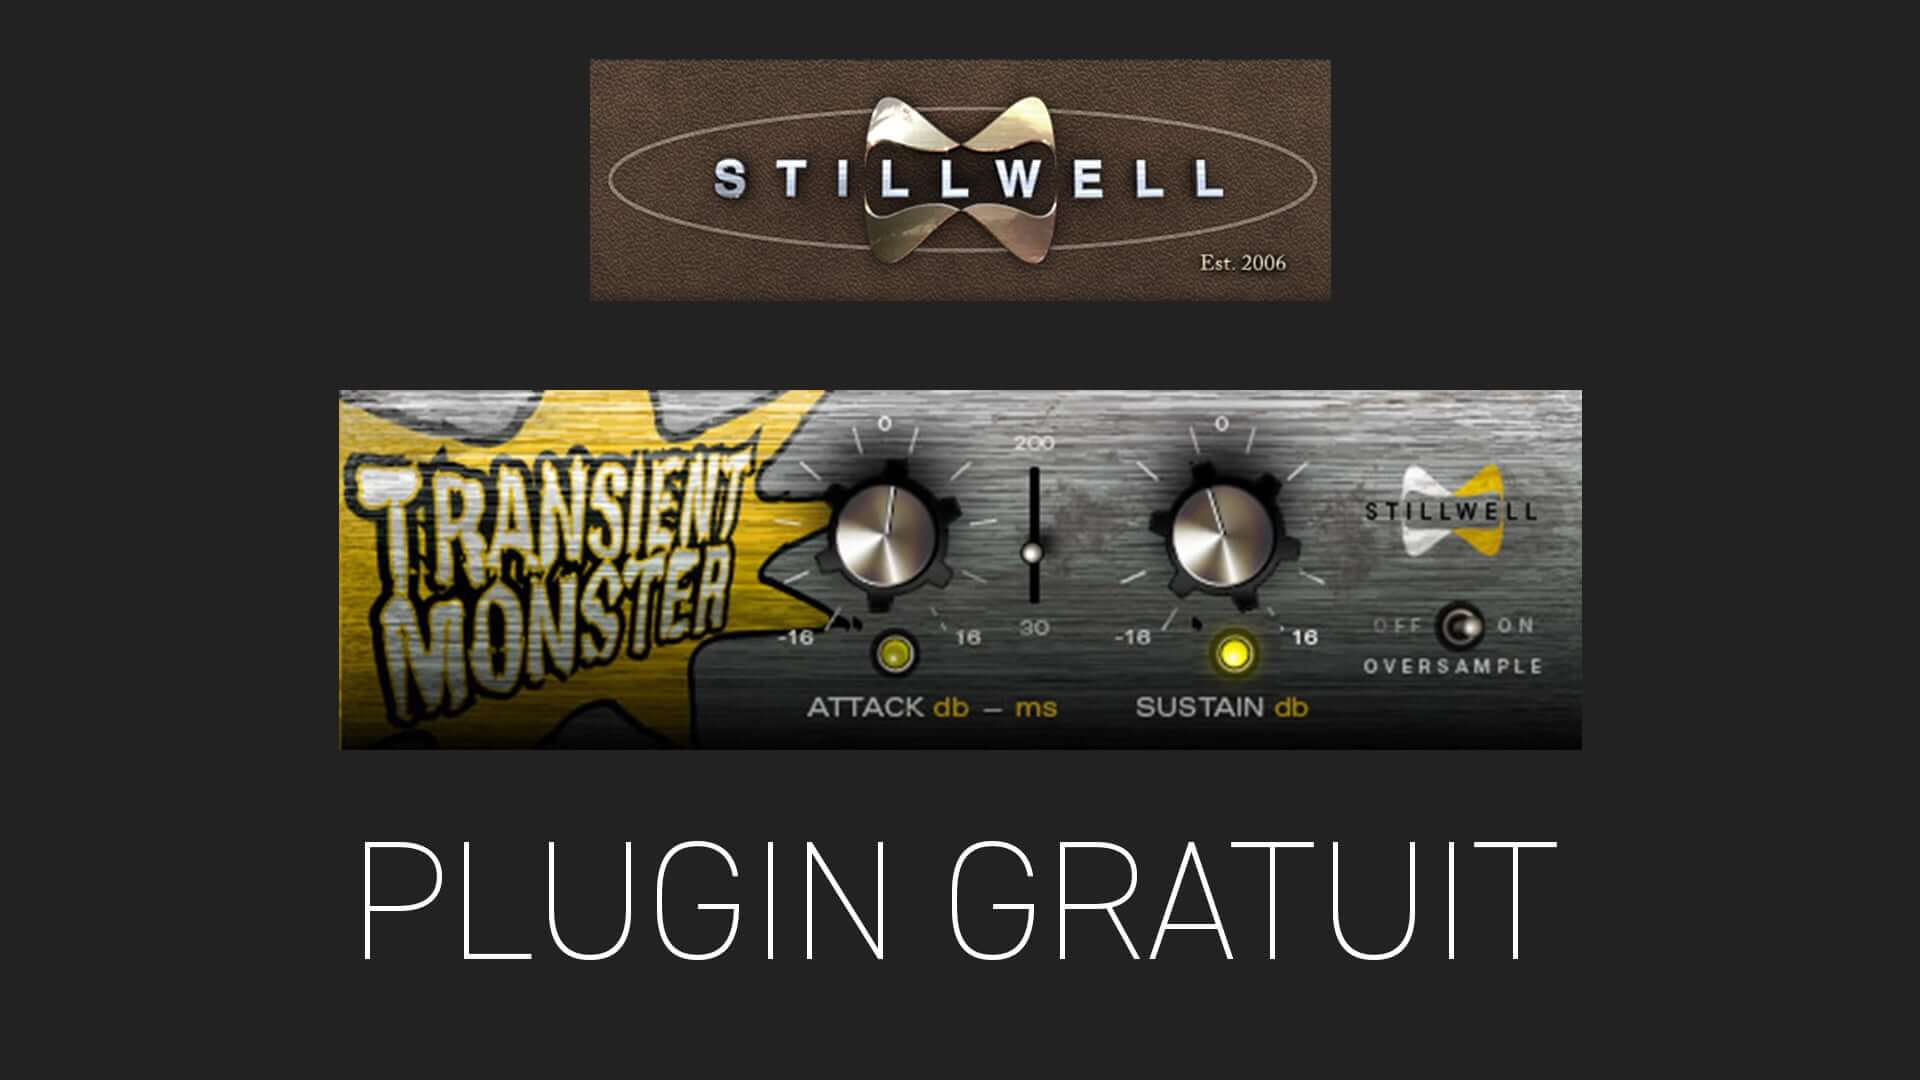 TRANSIENT MONSTER de Stillwell Plugin Gratuit